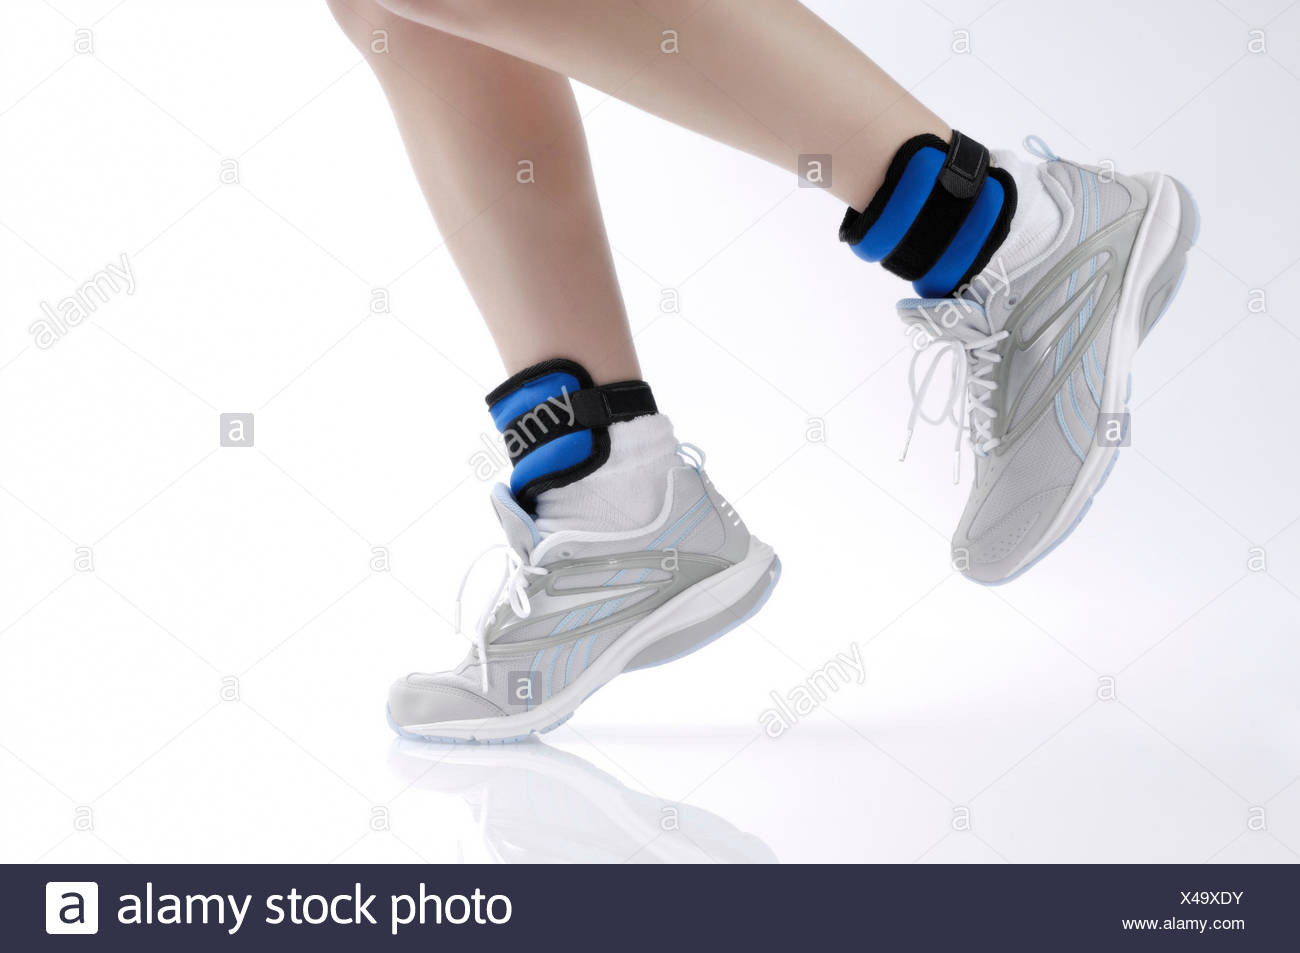 Woman jogging wearing ankle weights, detail - Stock Image